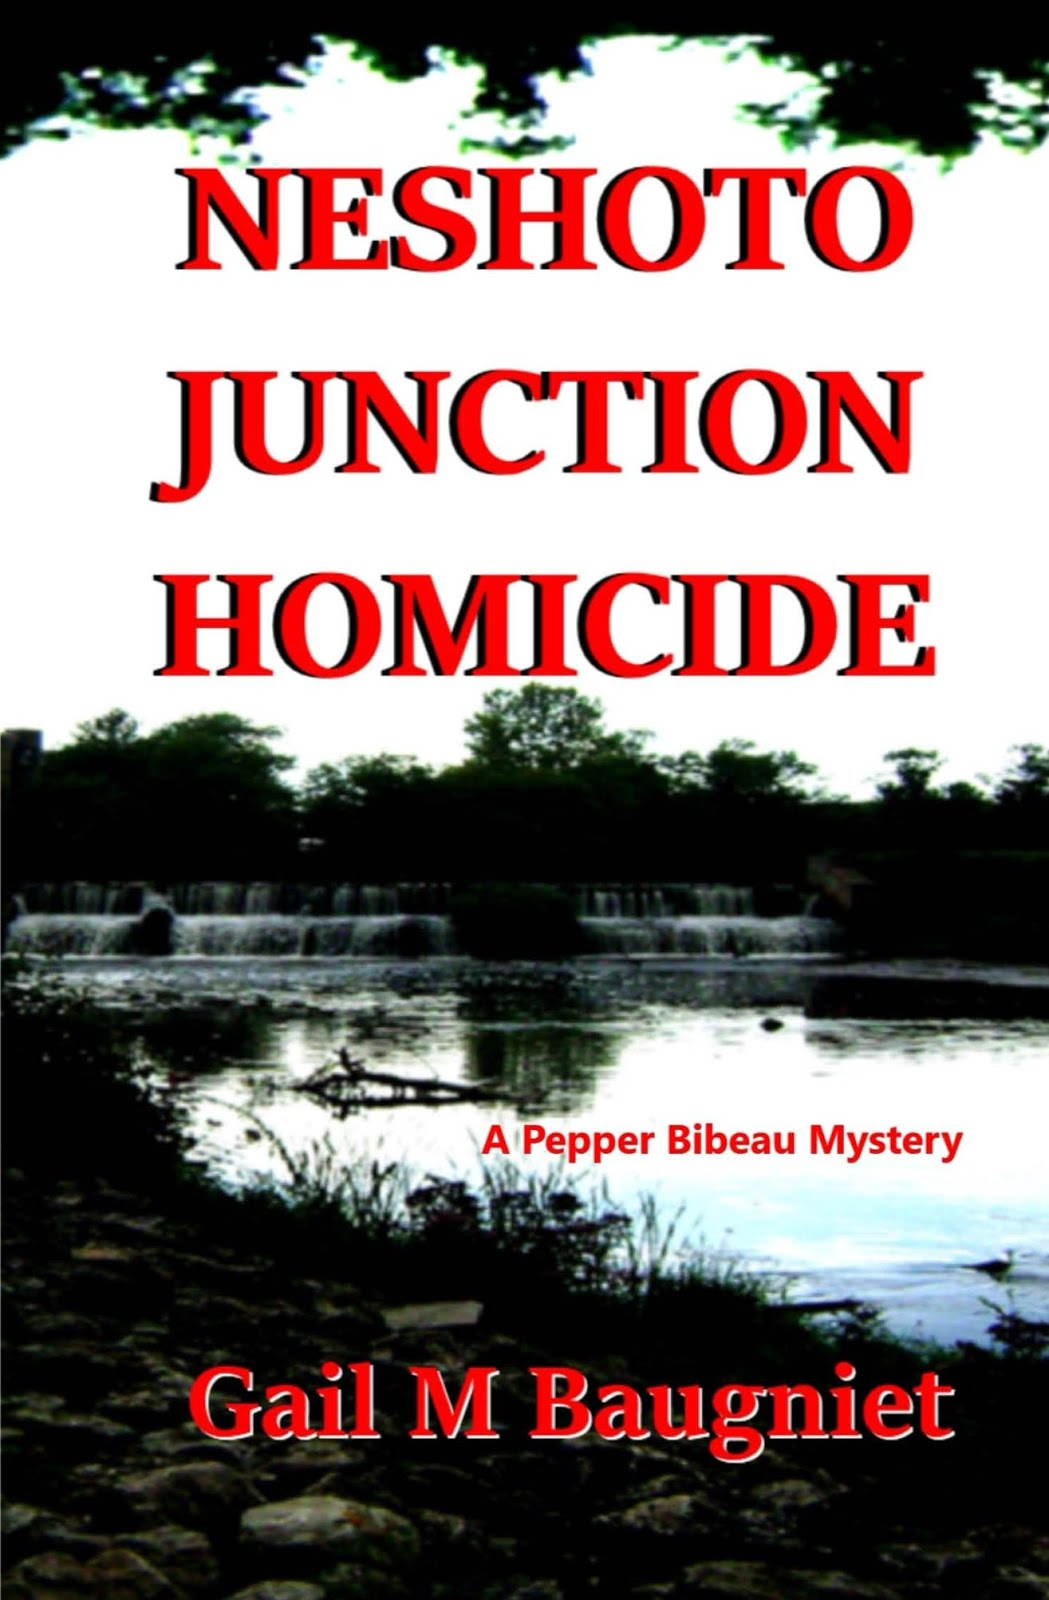 Neshoto Junction Homicide